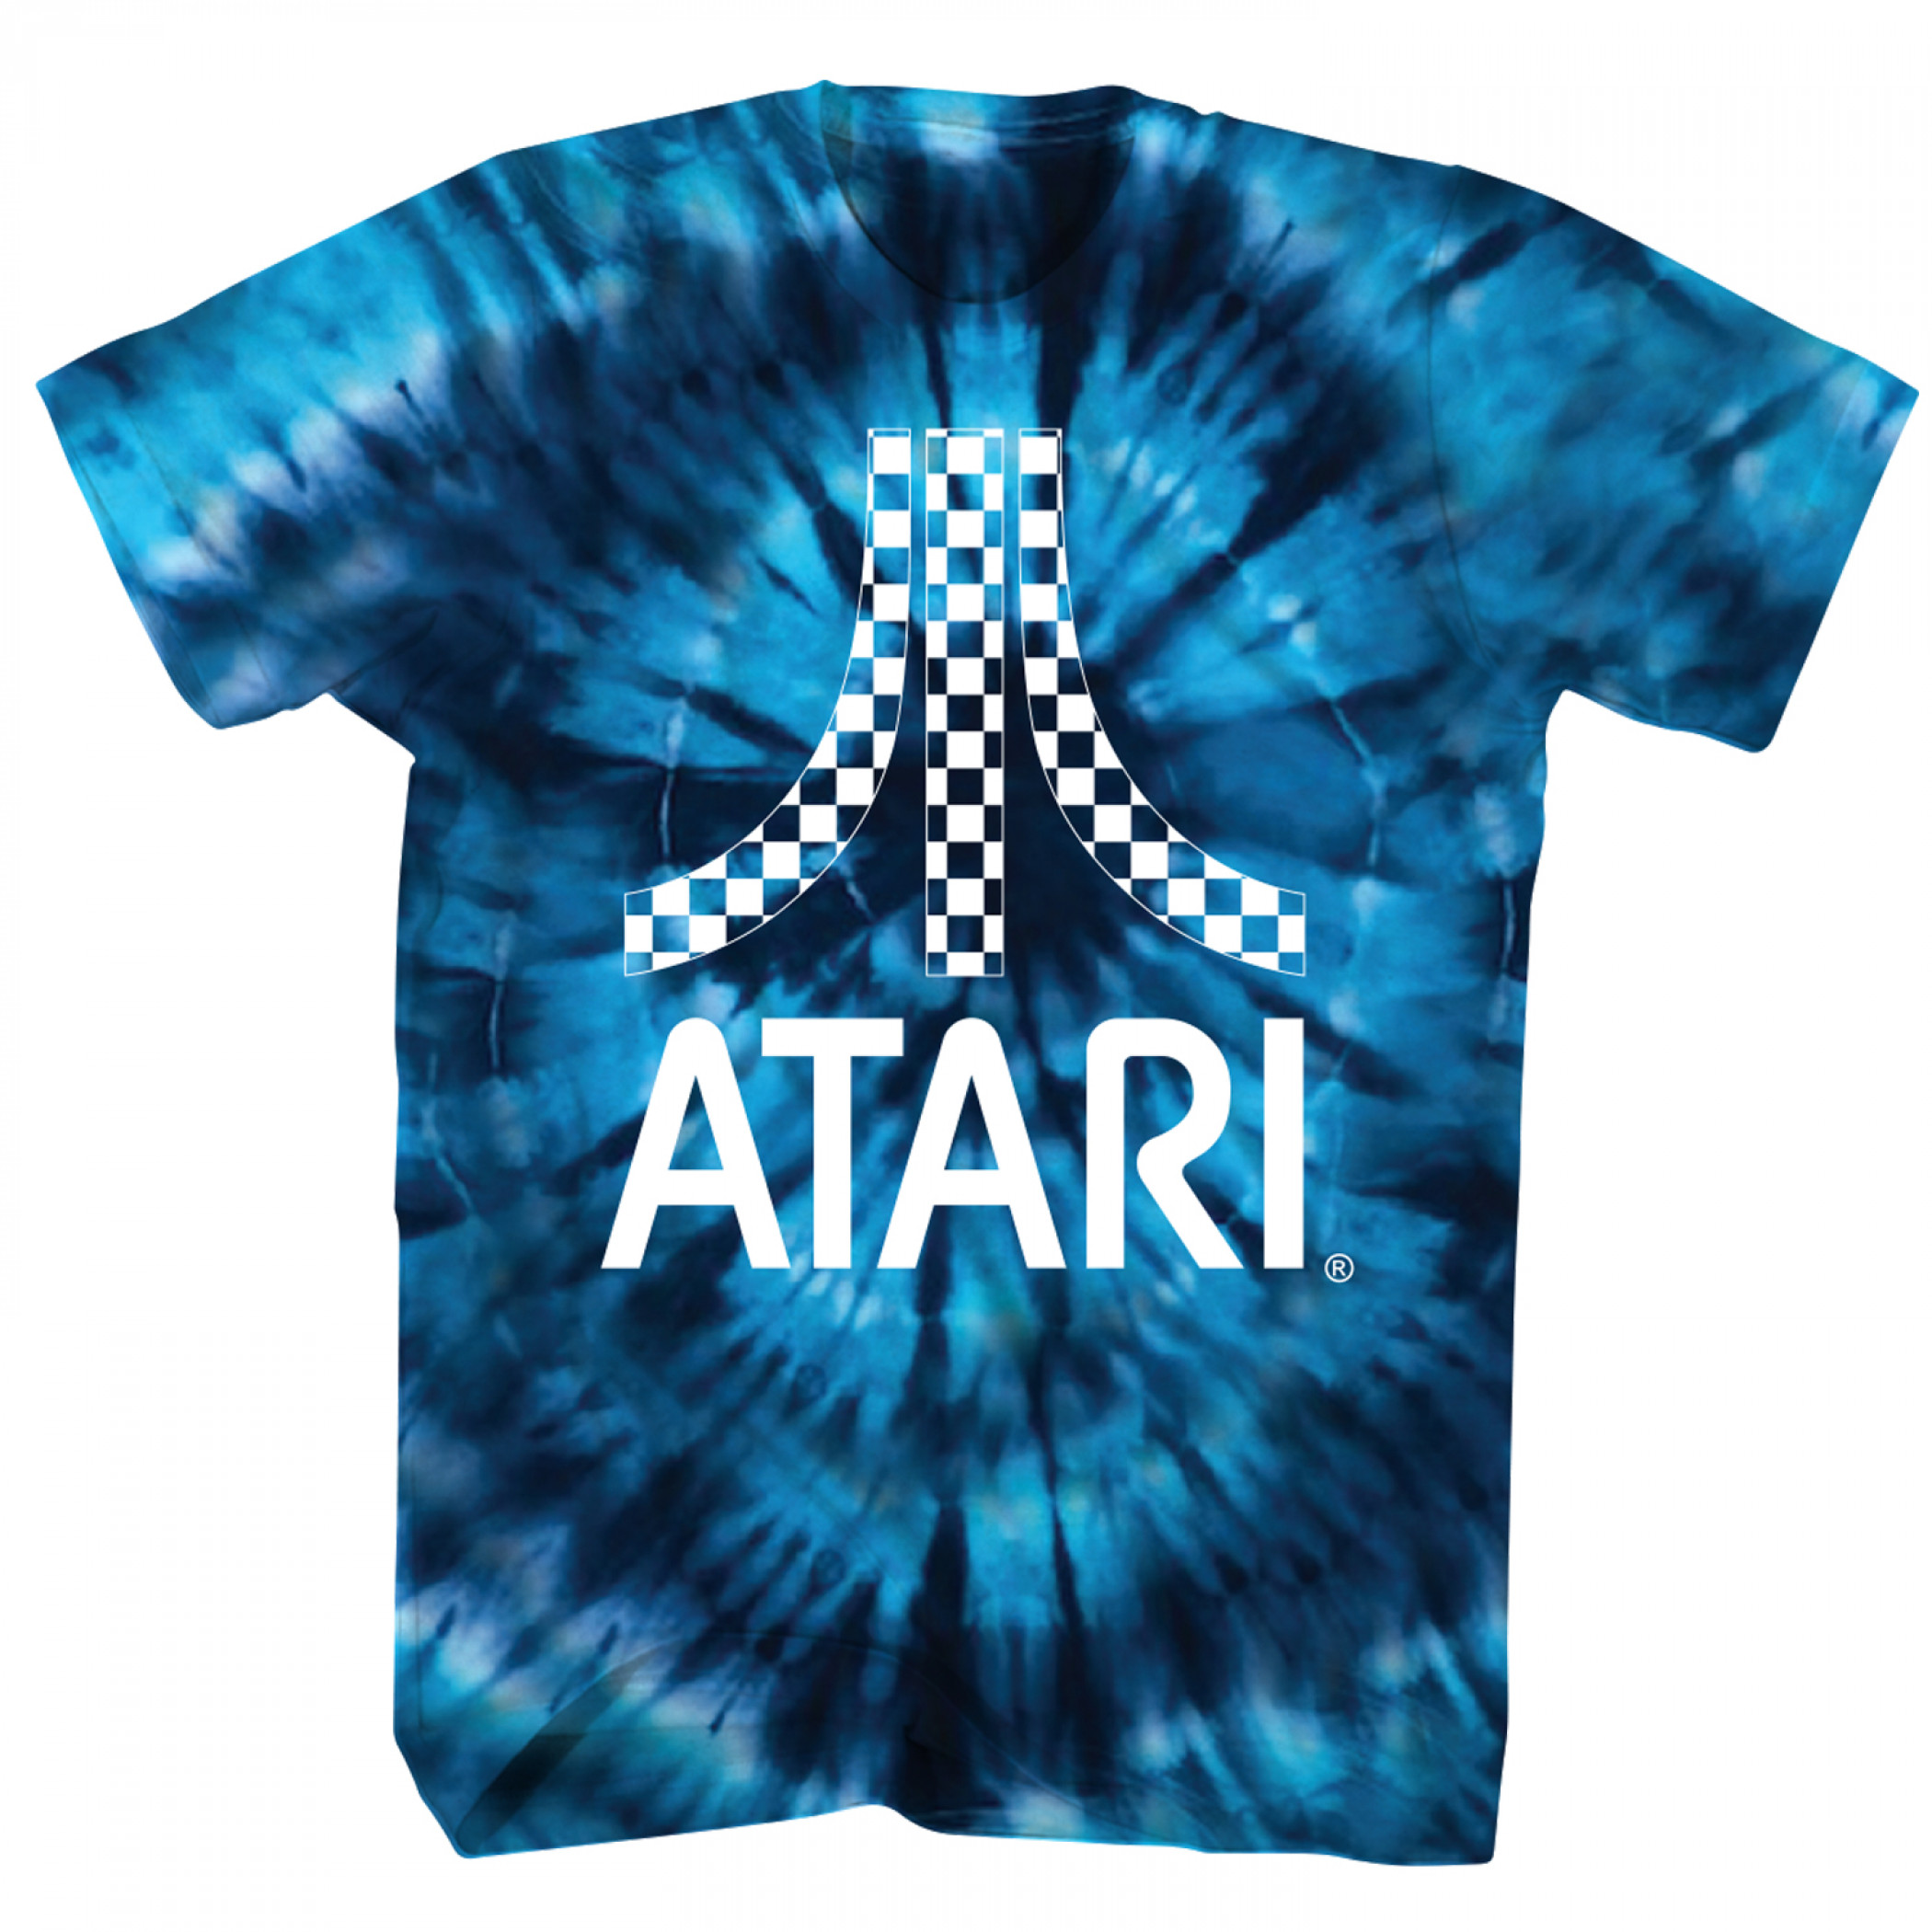 Atari Blue Tie Dyed T-Shirt